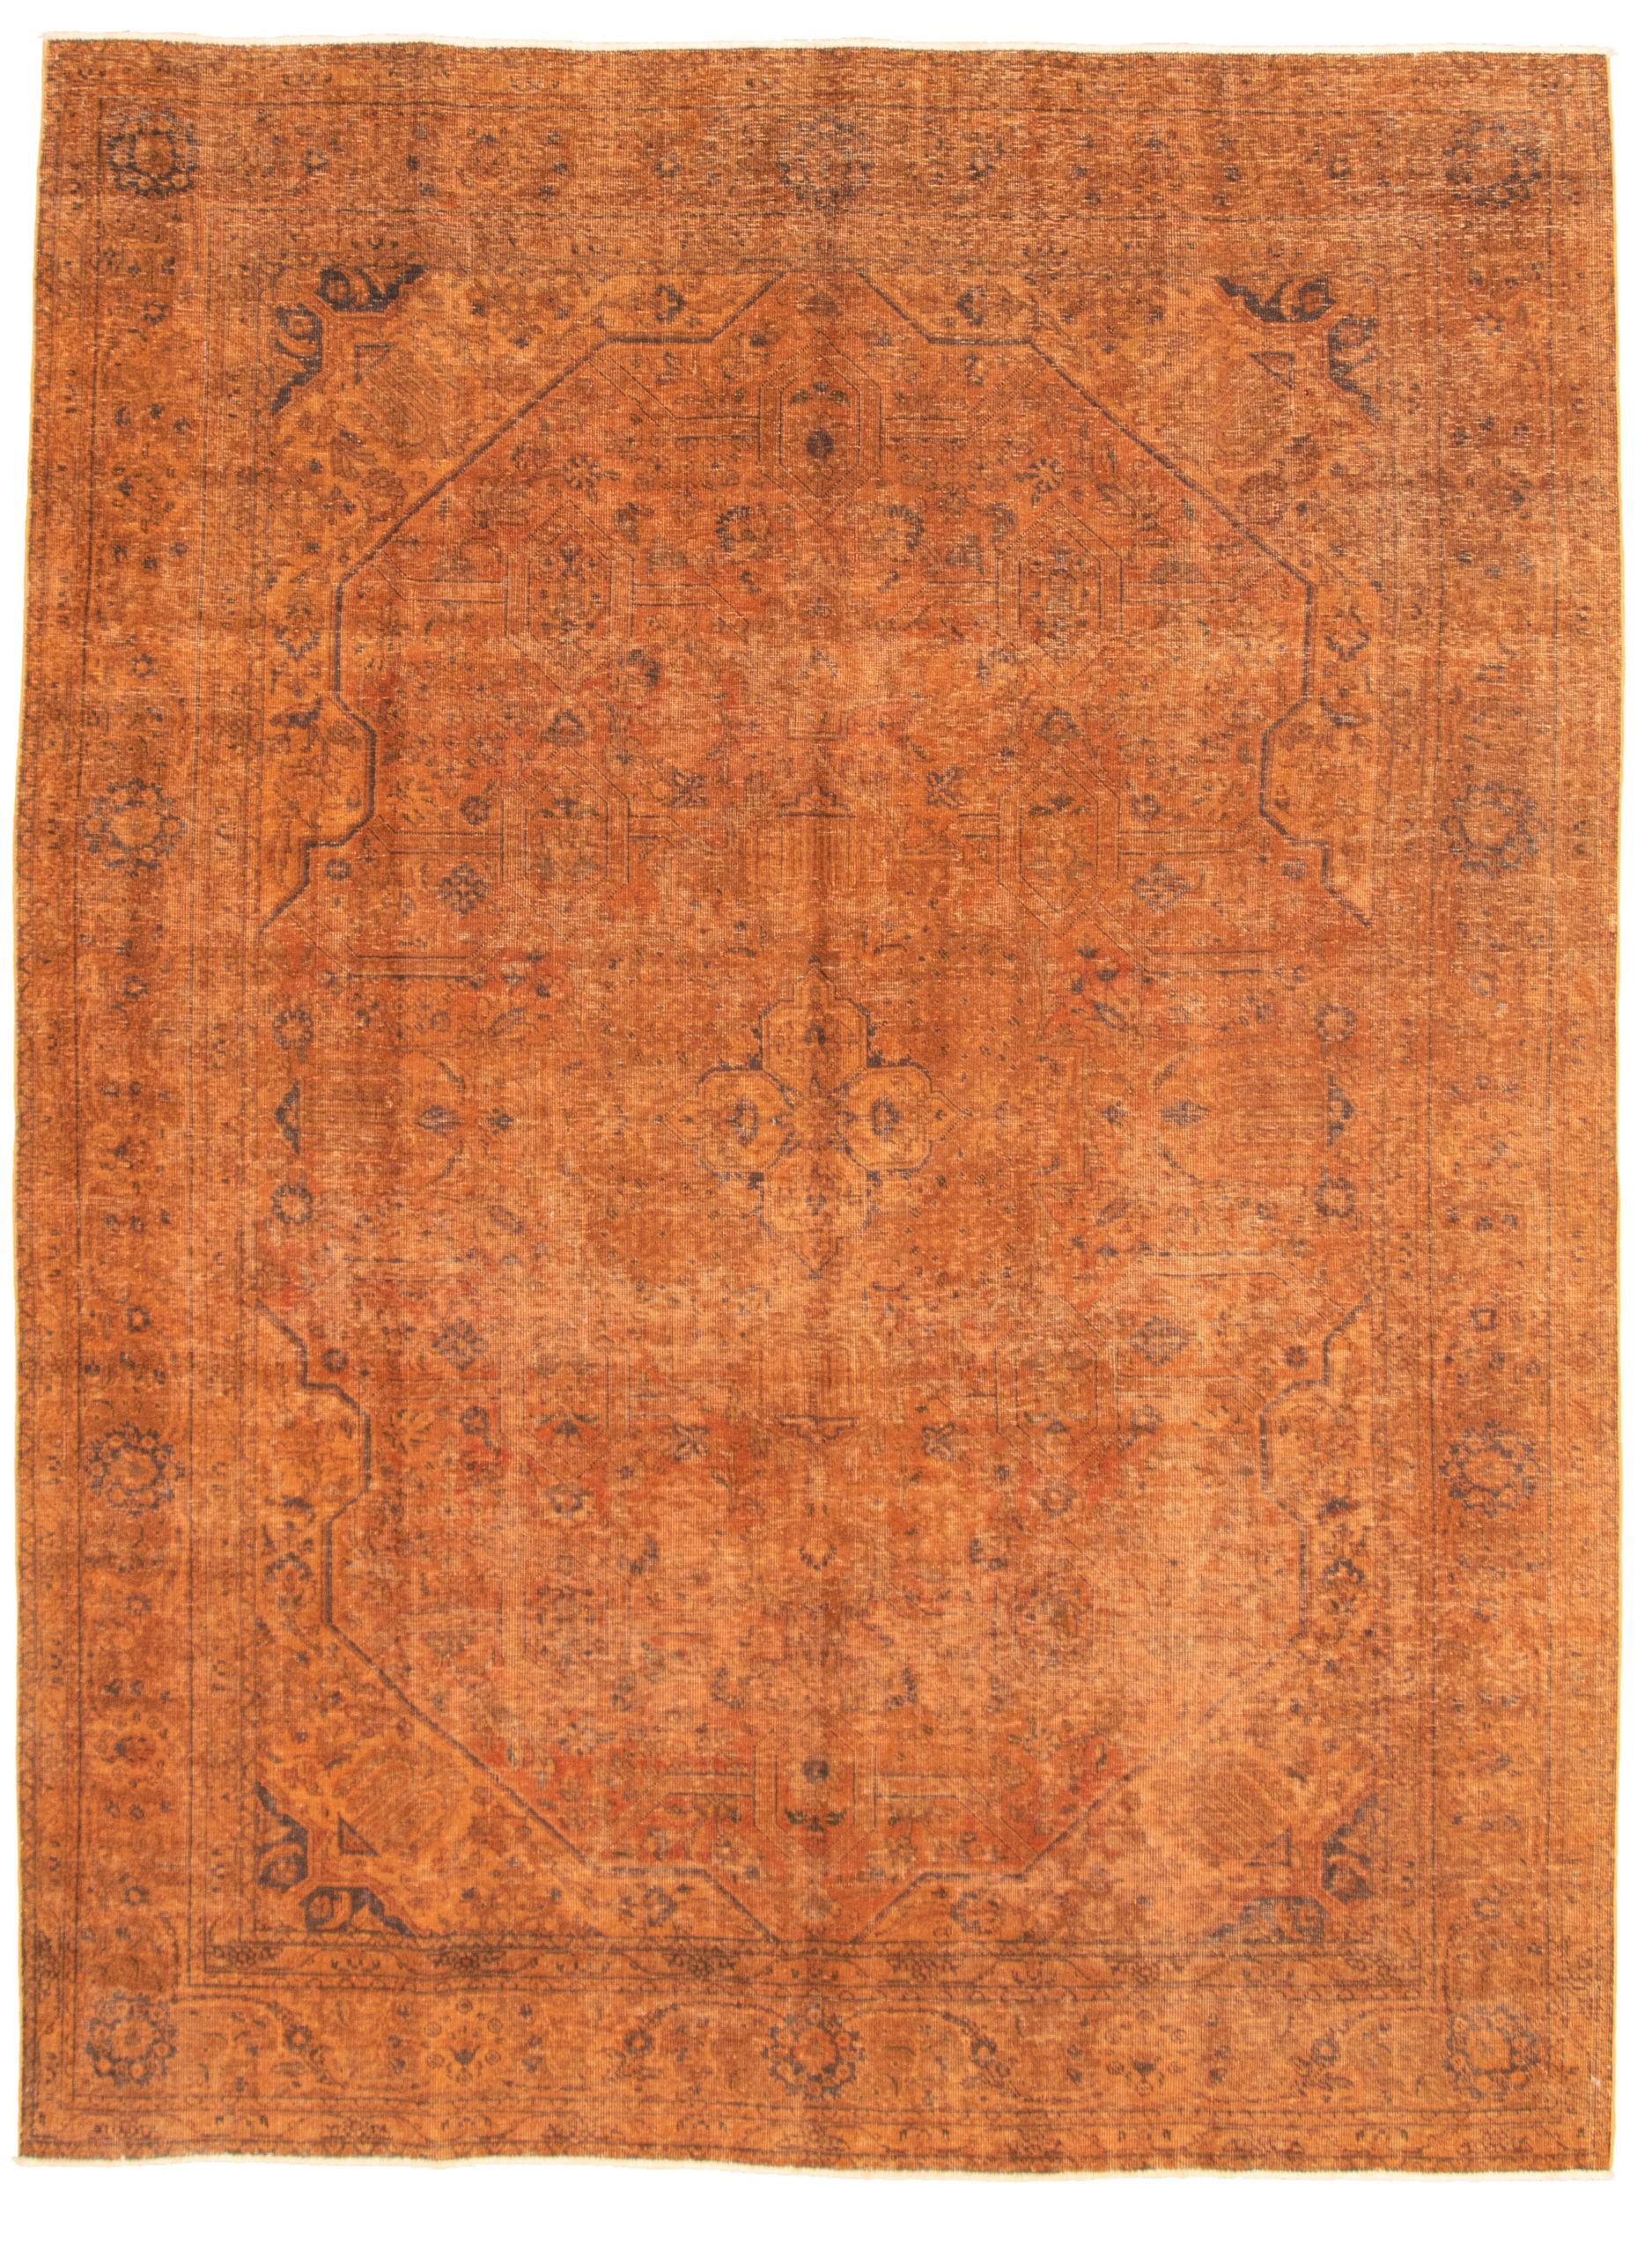 """Hand-knotted Color Transition Burnt Orange Wool Rug 8'1"""" x 10'8"""" Size: 8'1"""" x 10'8"""""""